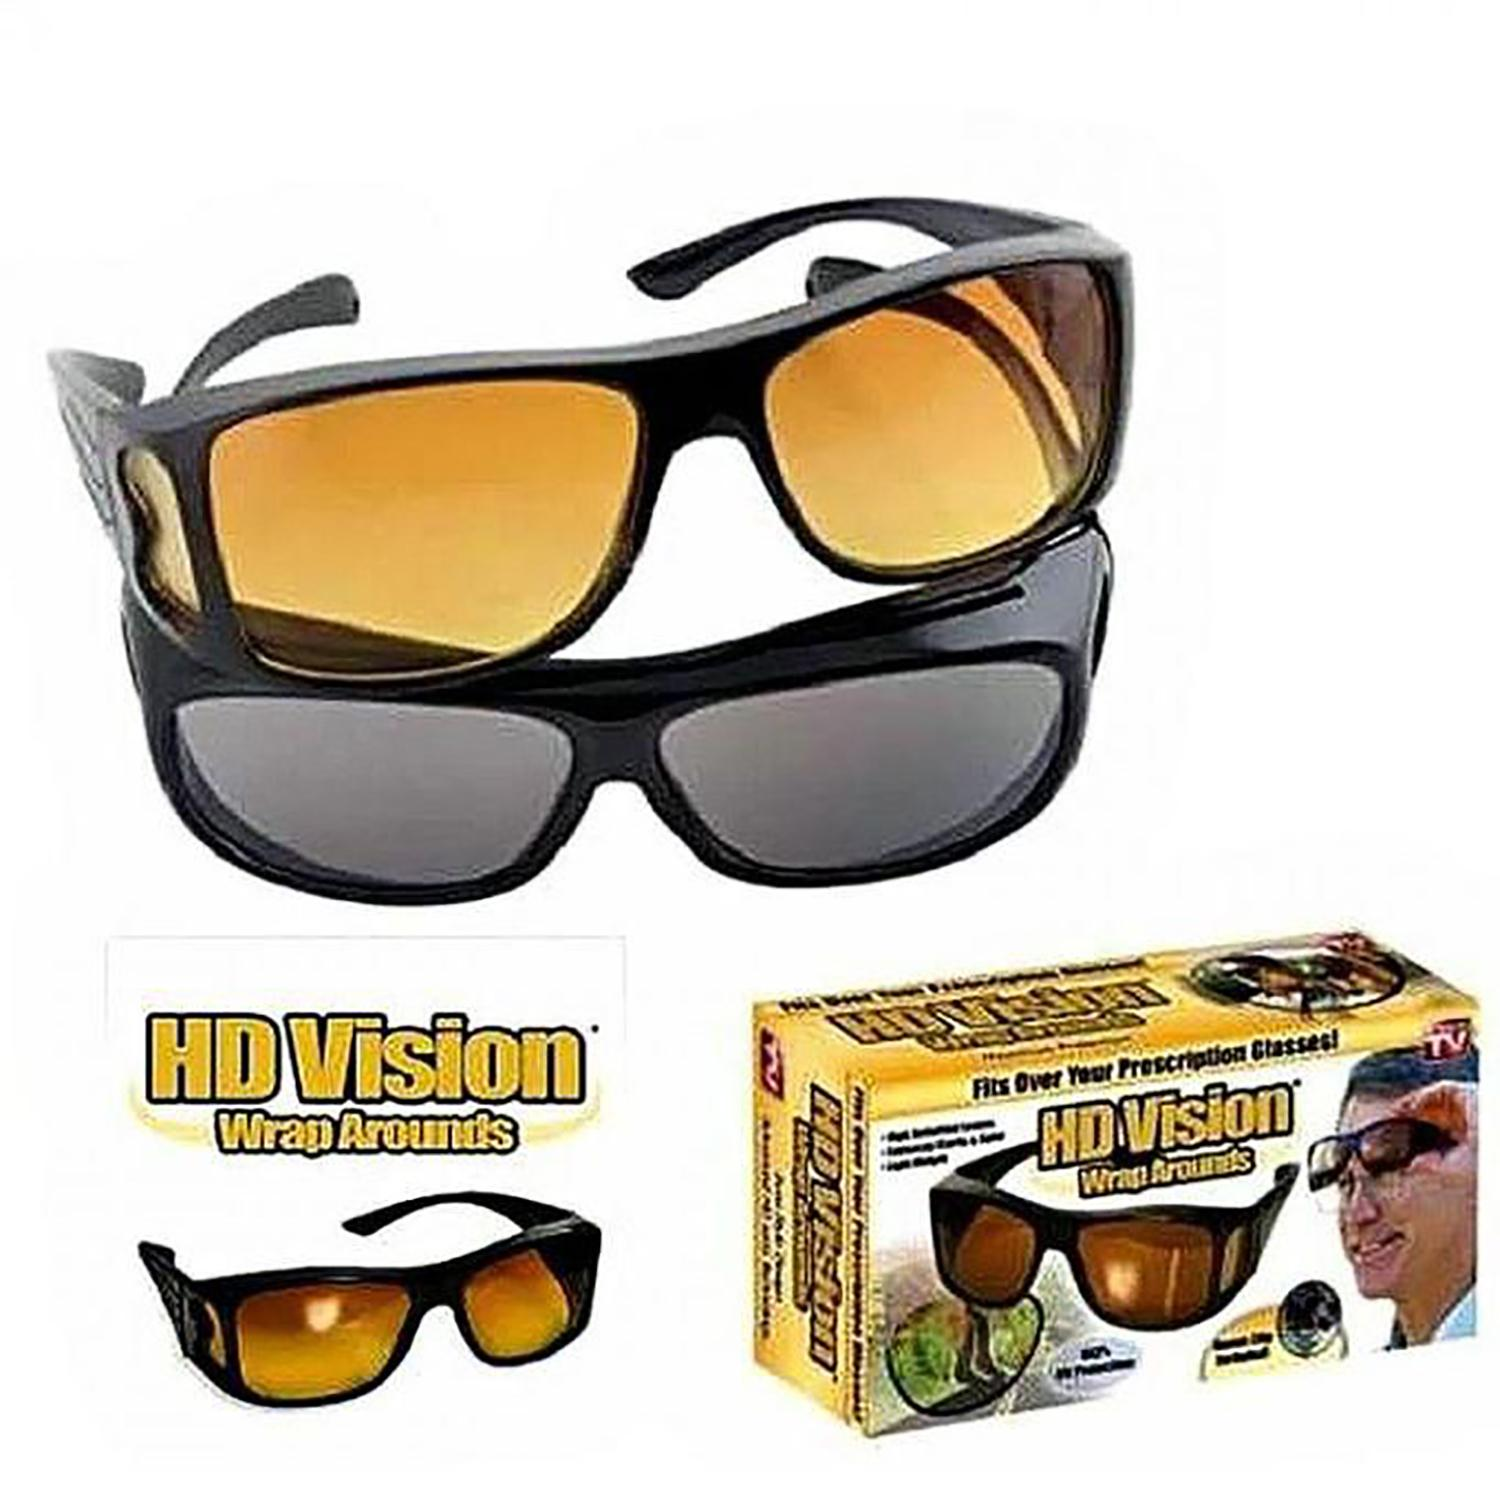 e06b3c34143a HD Vision Anti Glare Night View Driving Glasses Wrap Around Sunglasses Set  of 2